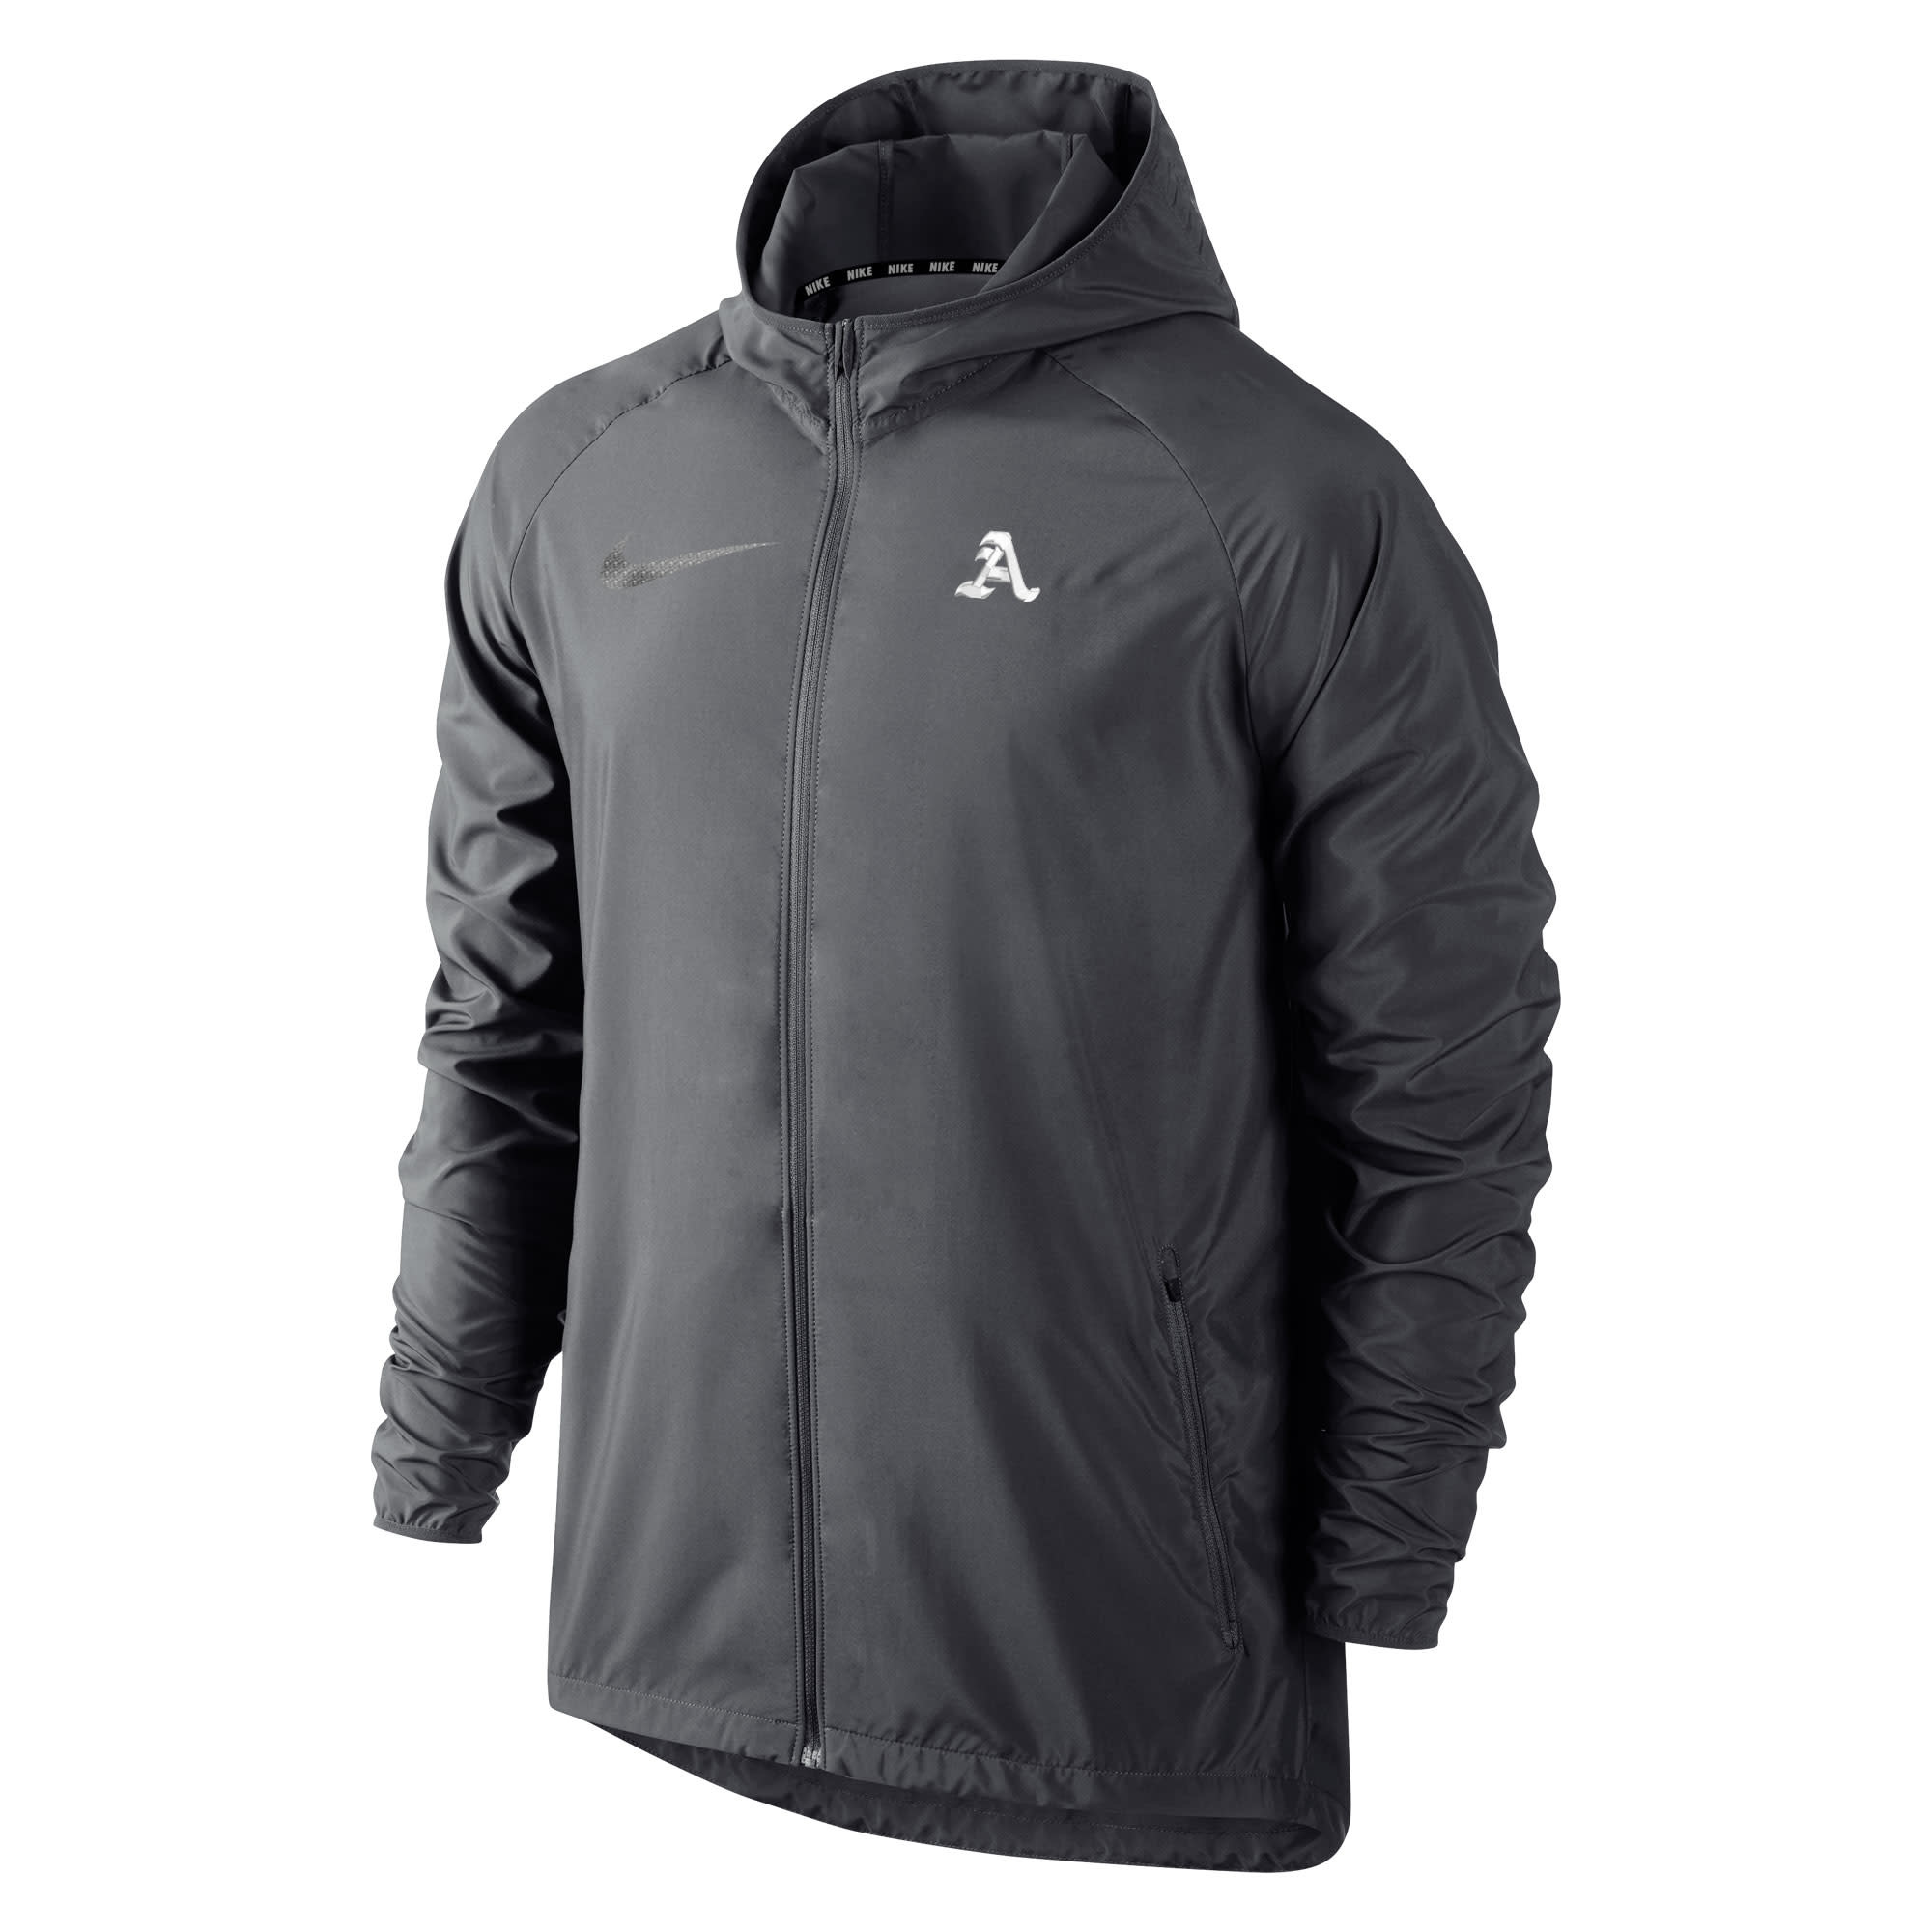 Nike 2021-2022 Essential Jacket Anthracite